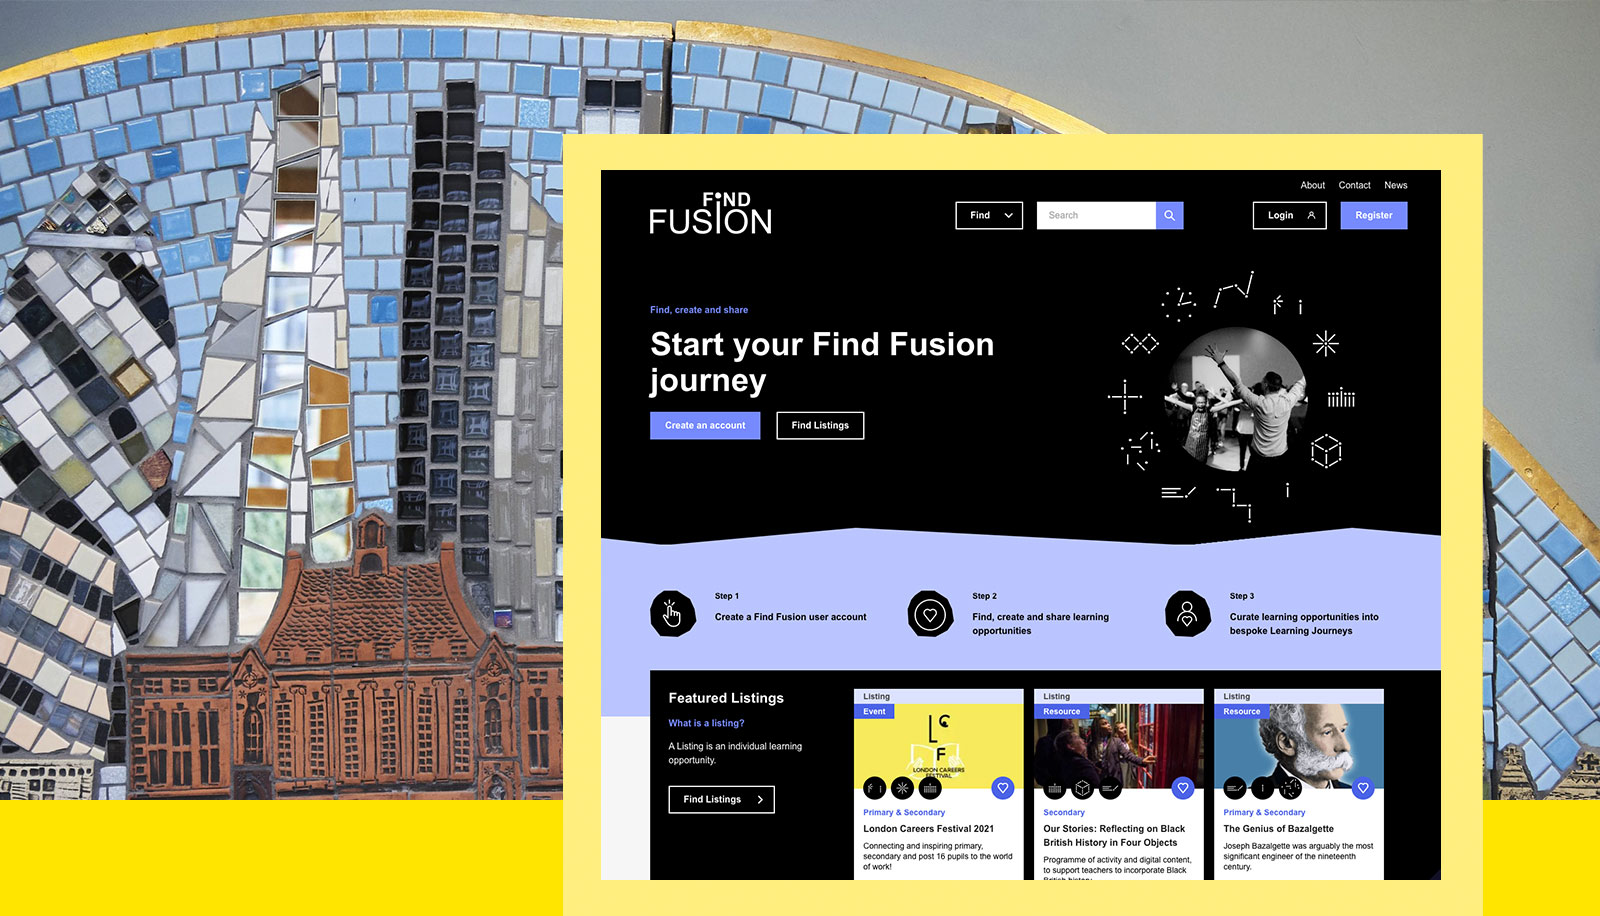 Screenshot of the 'Find Fusion